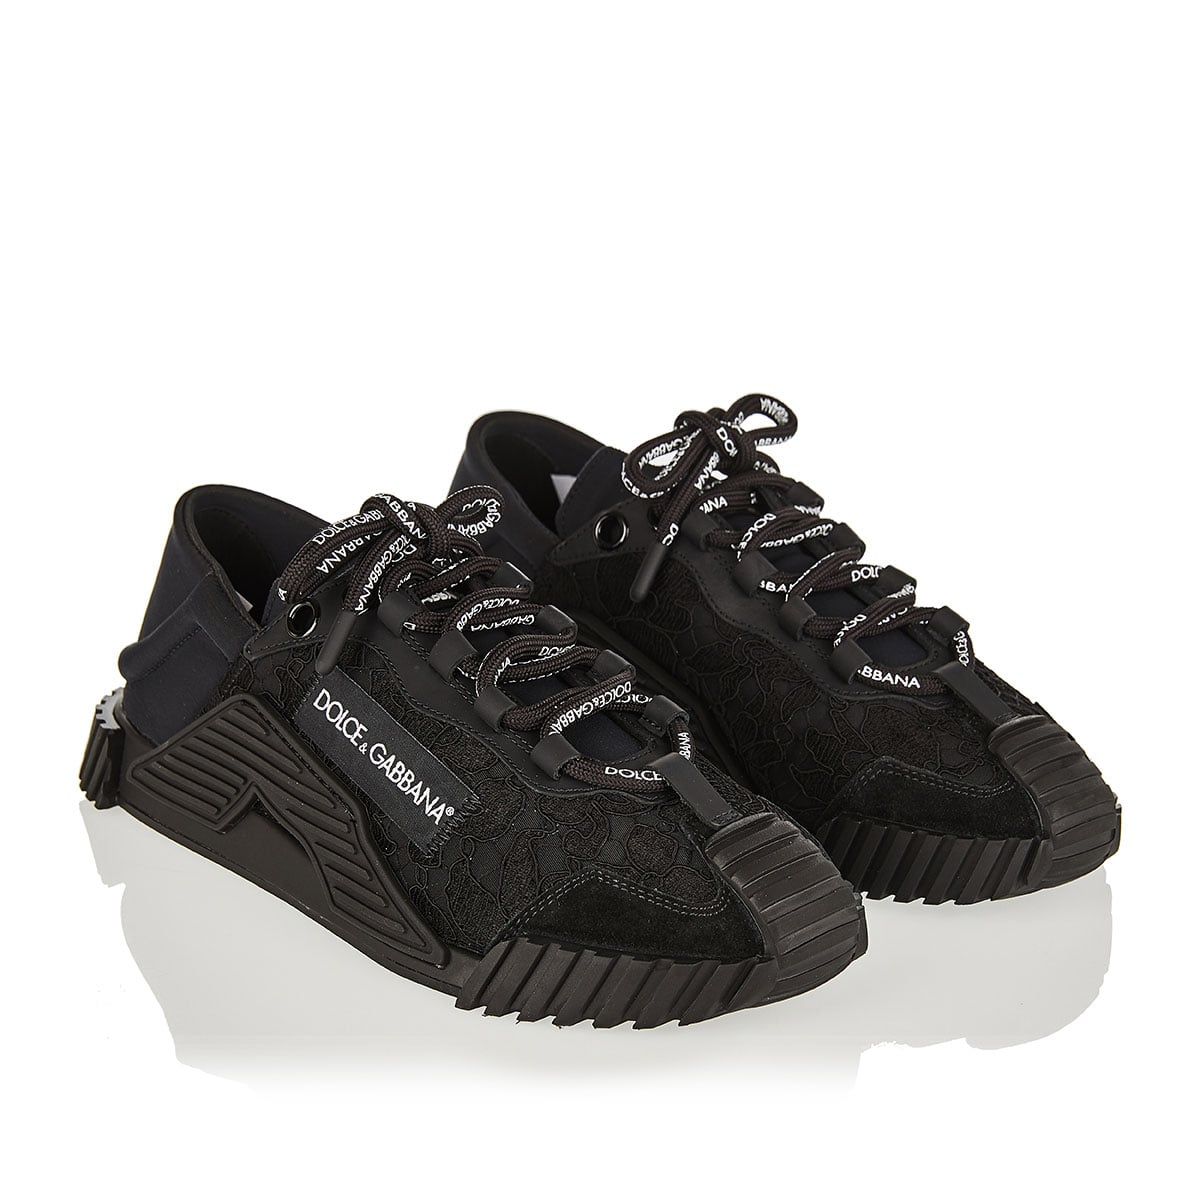 NS 1 lace sneakers